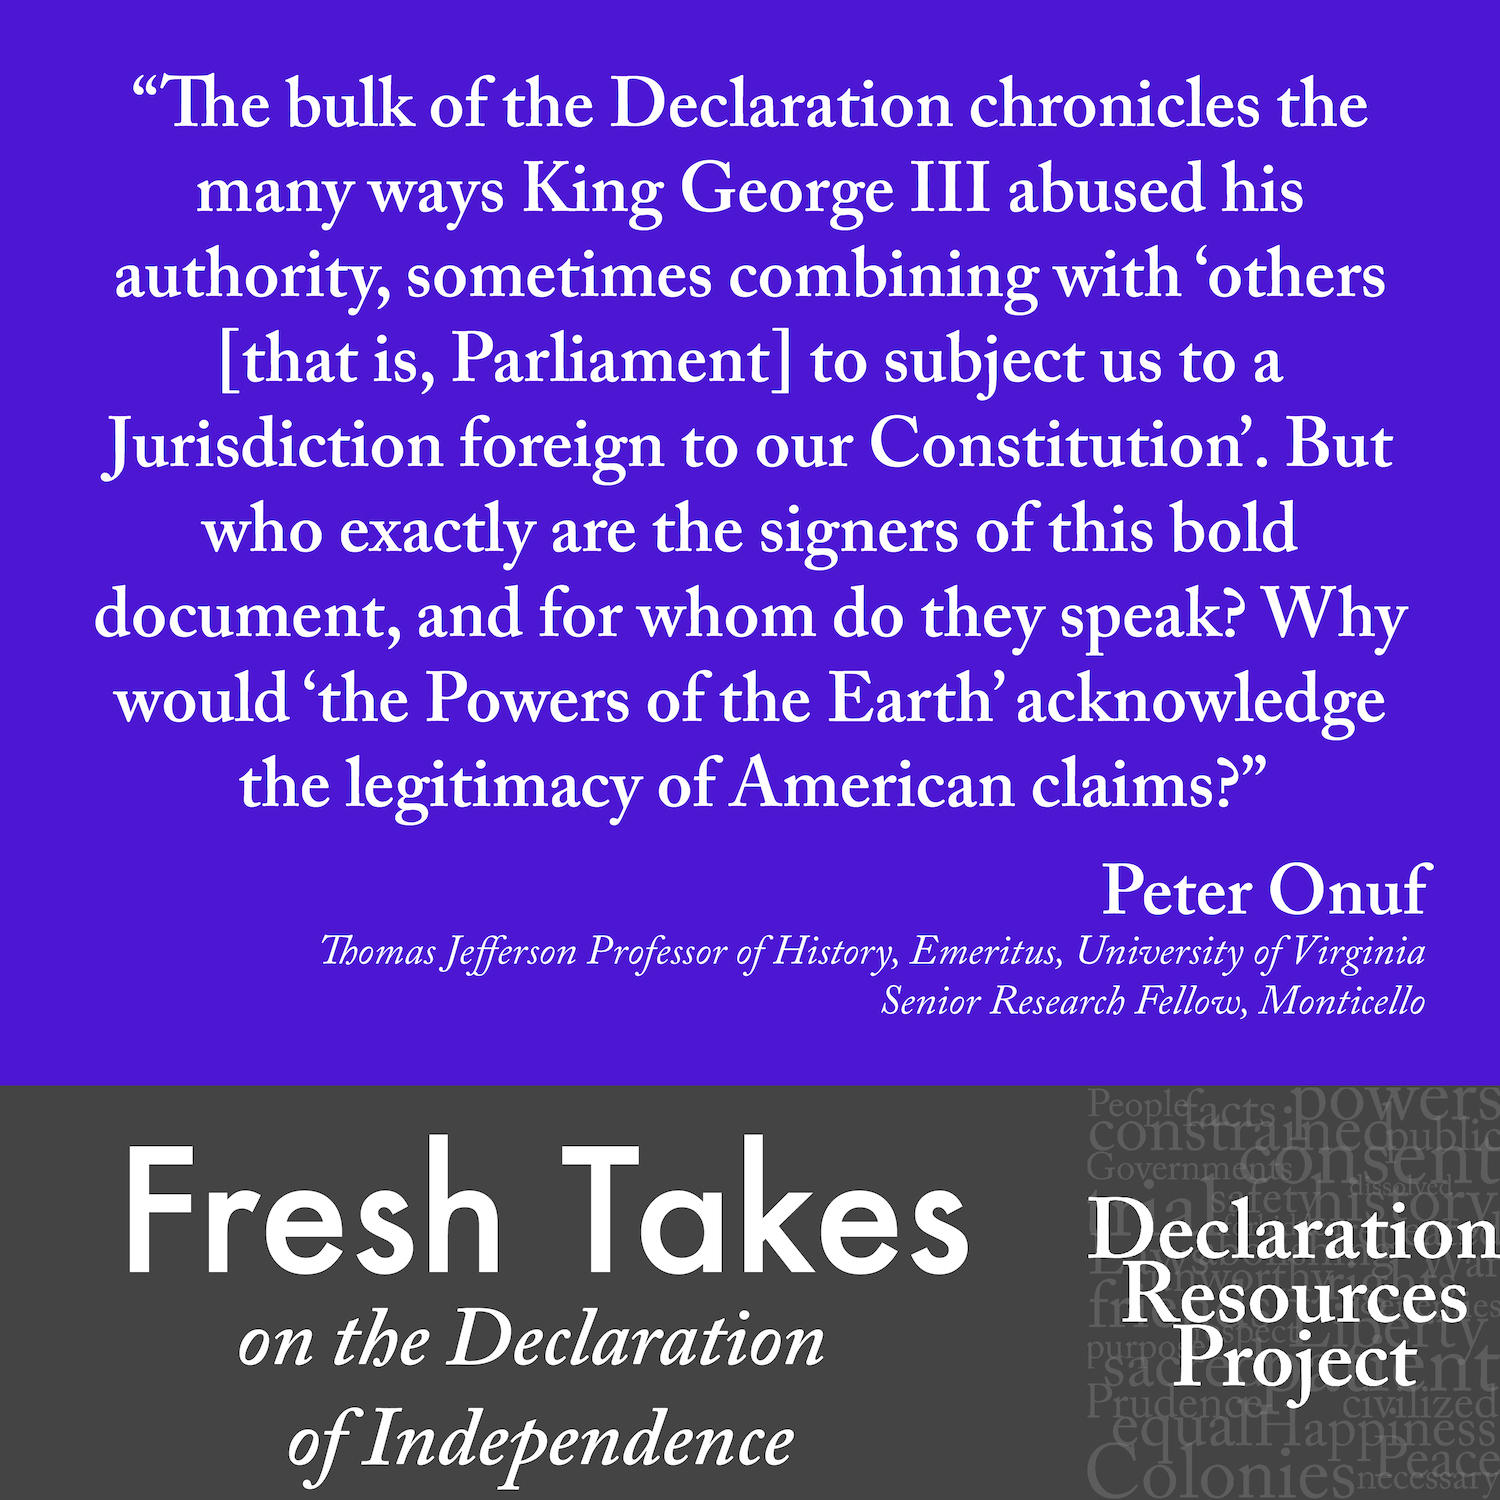 Peter Onuf's Fresh Take on the Declaration of Independence